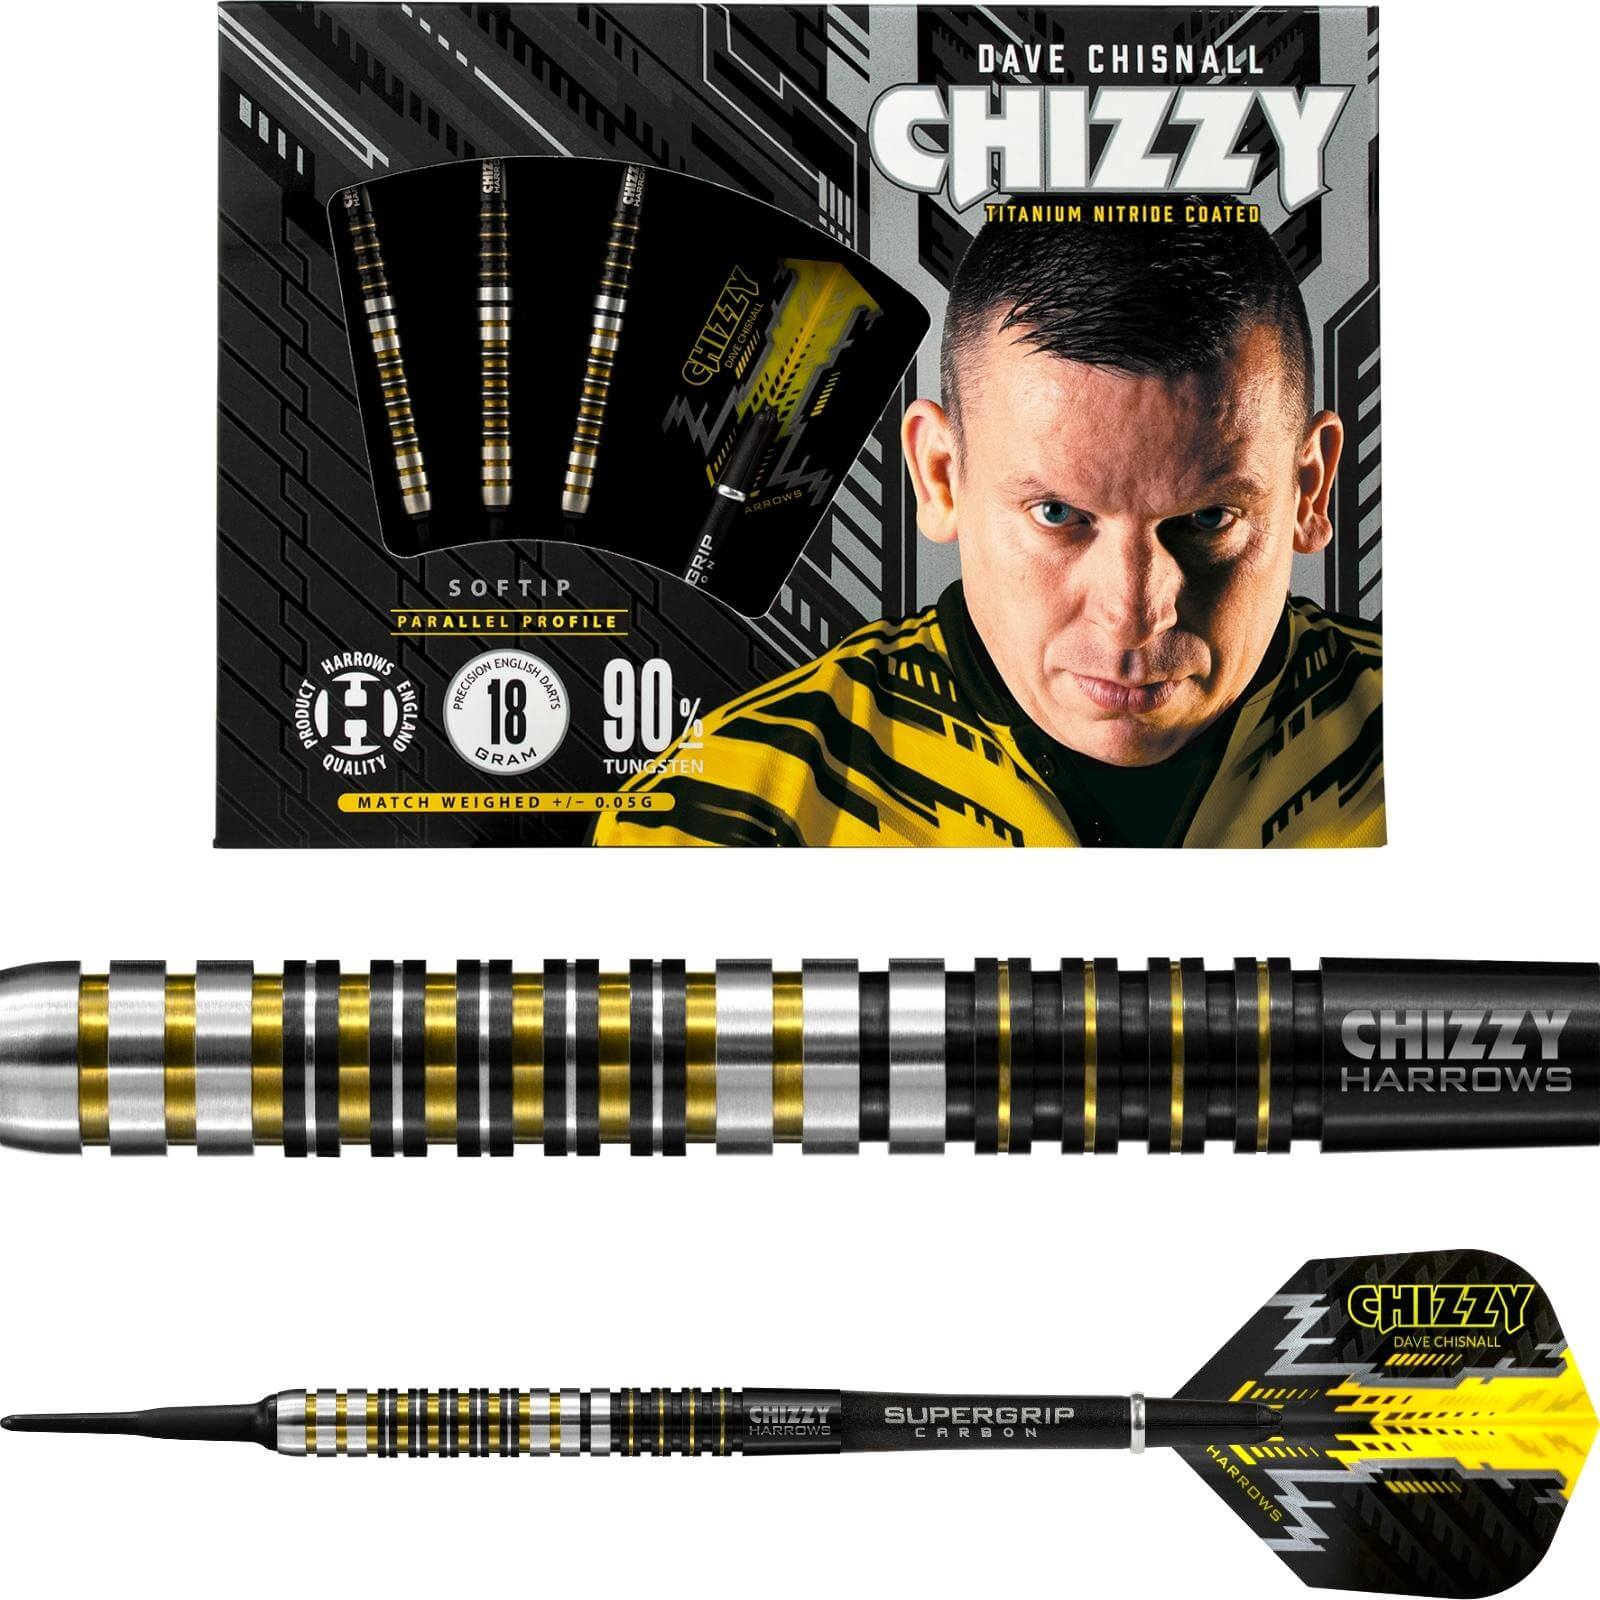 Darts - Harrows - Chizzy - Dave Chisnall Darts - Steel Tip - 90% Tungsten - 21g 22g 23g 24g 25g 26g